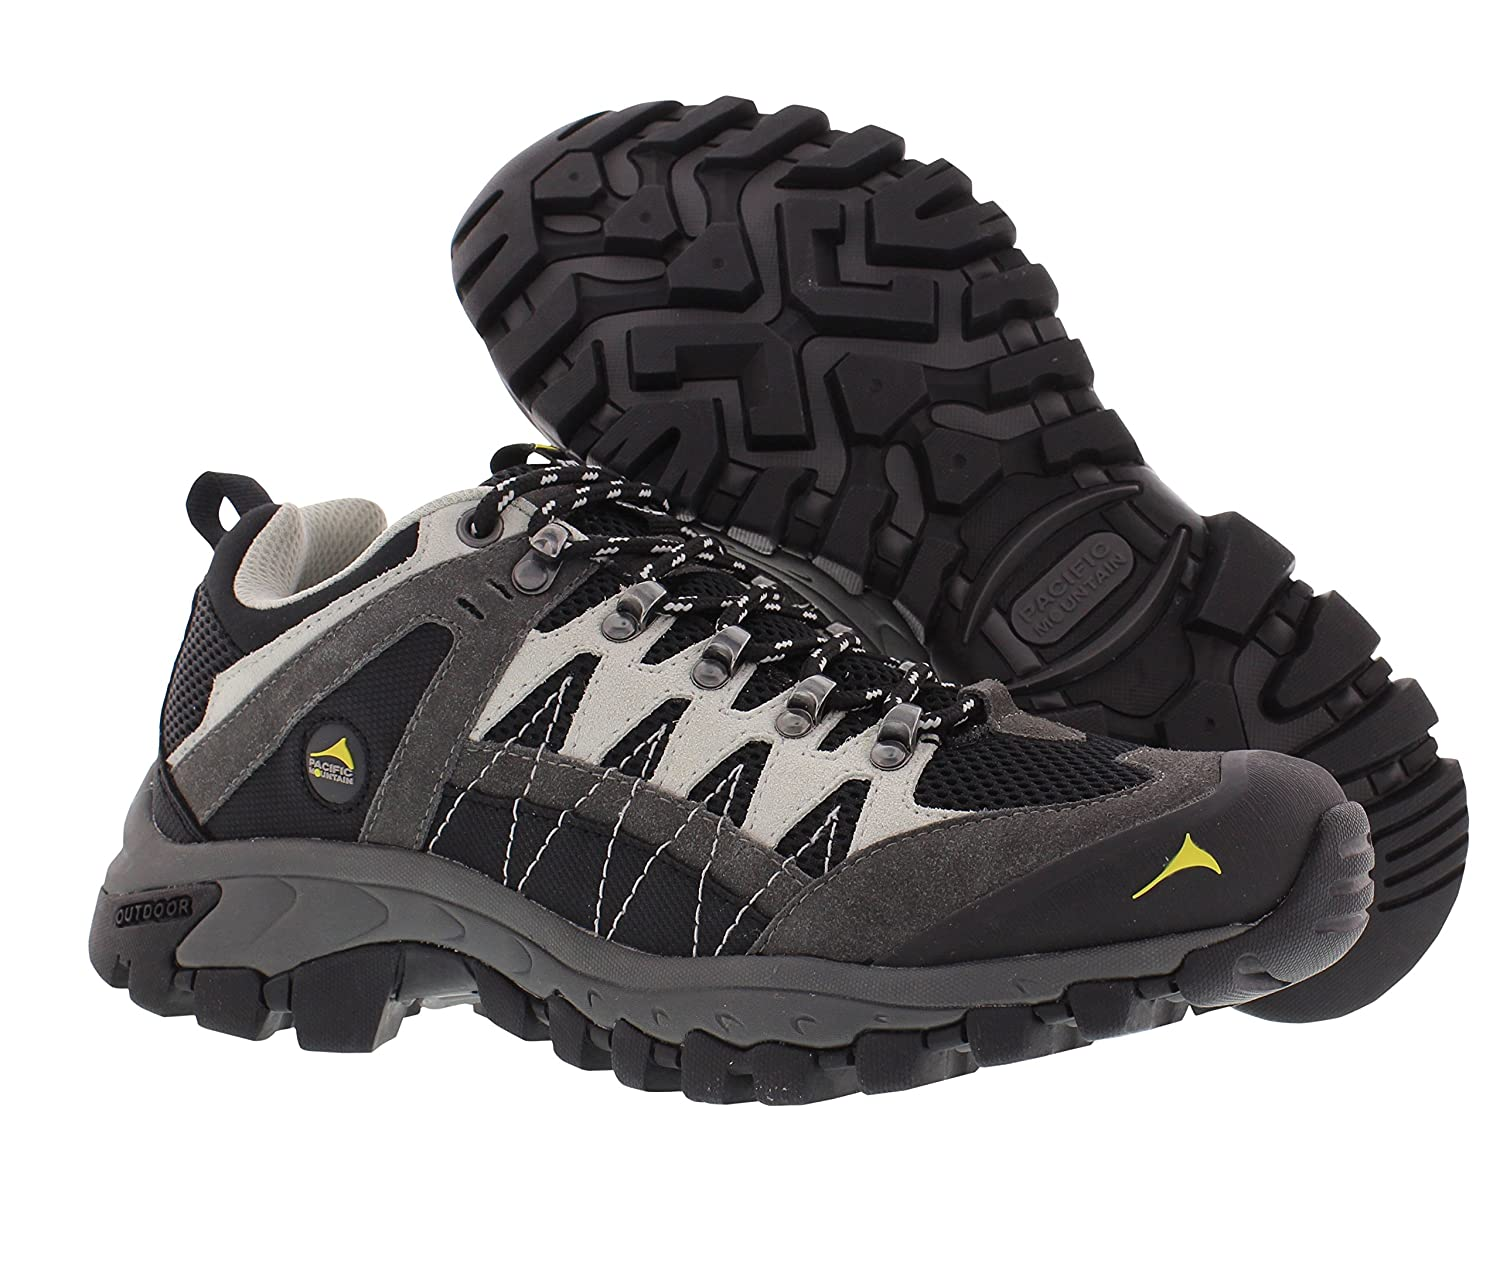 Pacific Mountain Crater Men's ... Hiking Shoes 9L7wtN